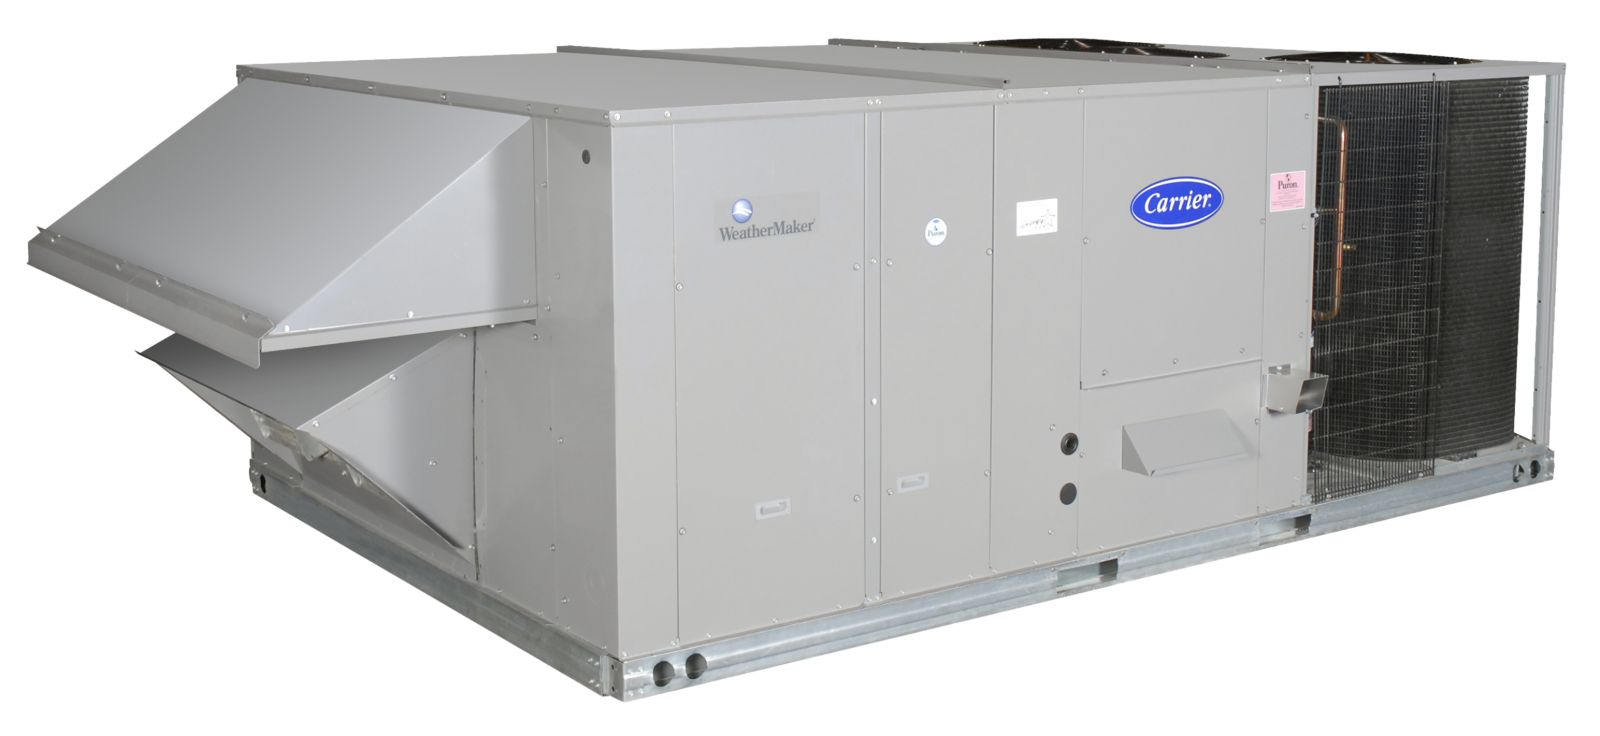 Carrier Weathermaker 175 Ton Packaged Rooftop Gas Heat Heating Ac Wiring To Strips Electric Cool Unit Vert Air Flowmed Heat2 Stg208 230 3 60